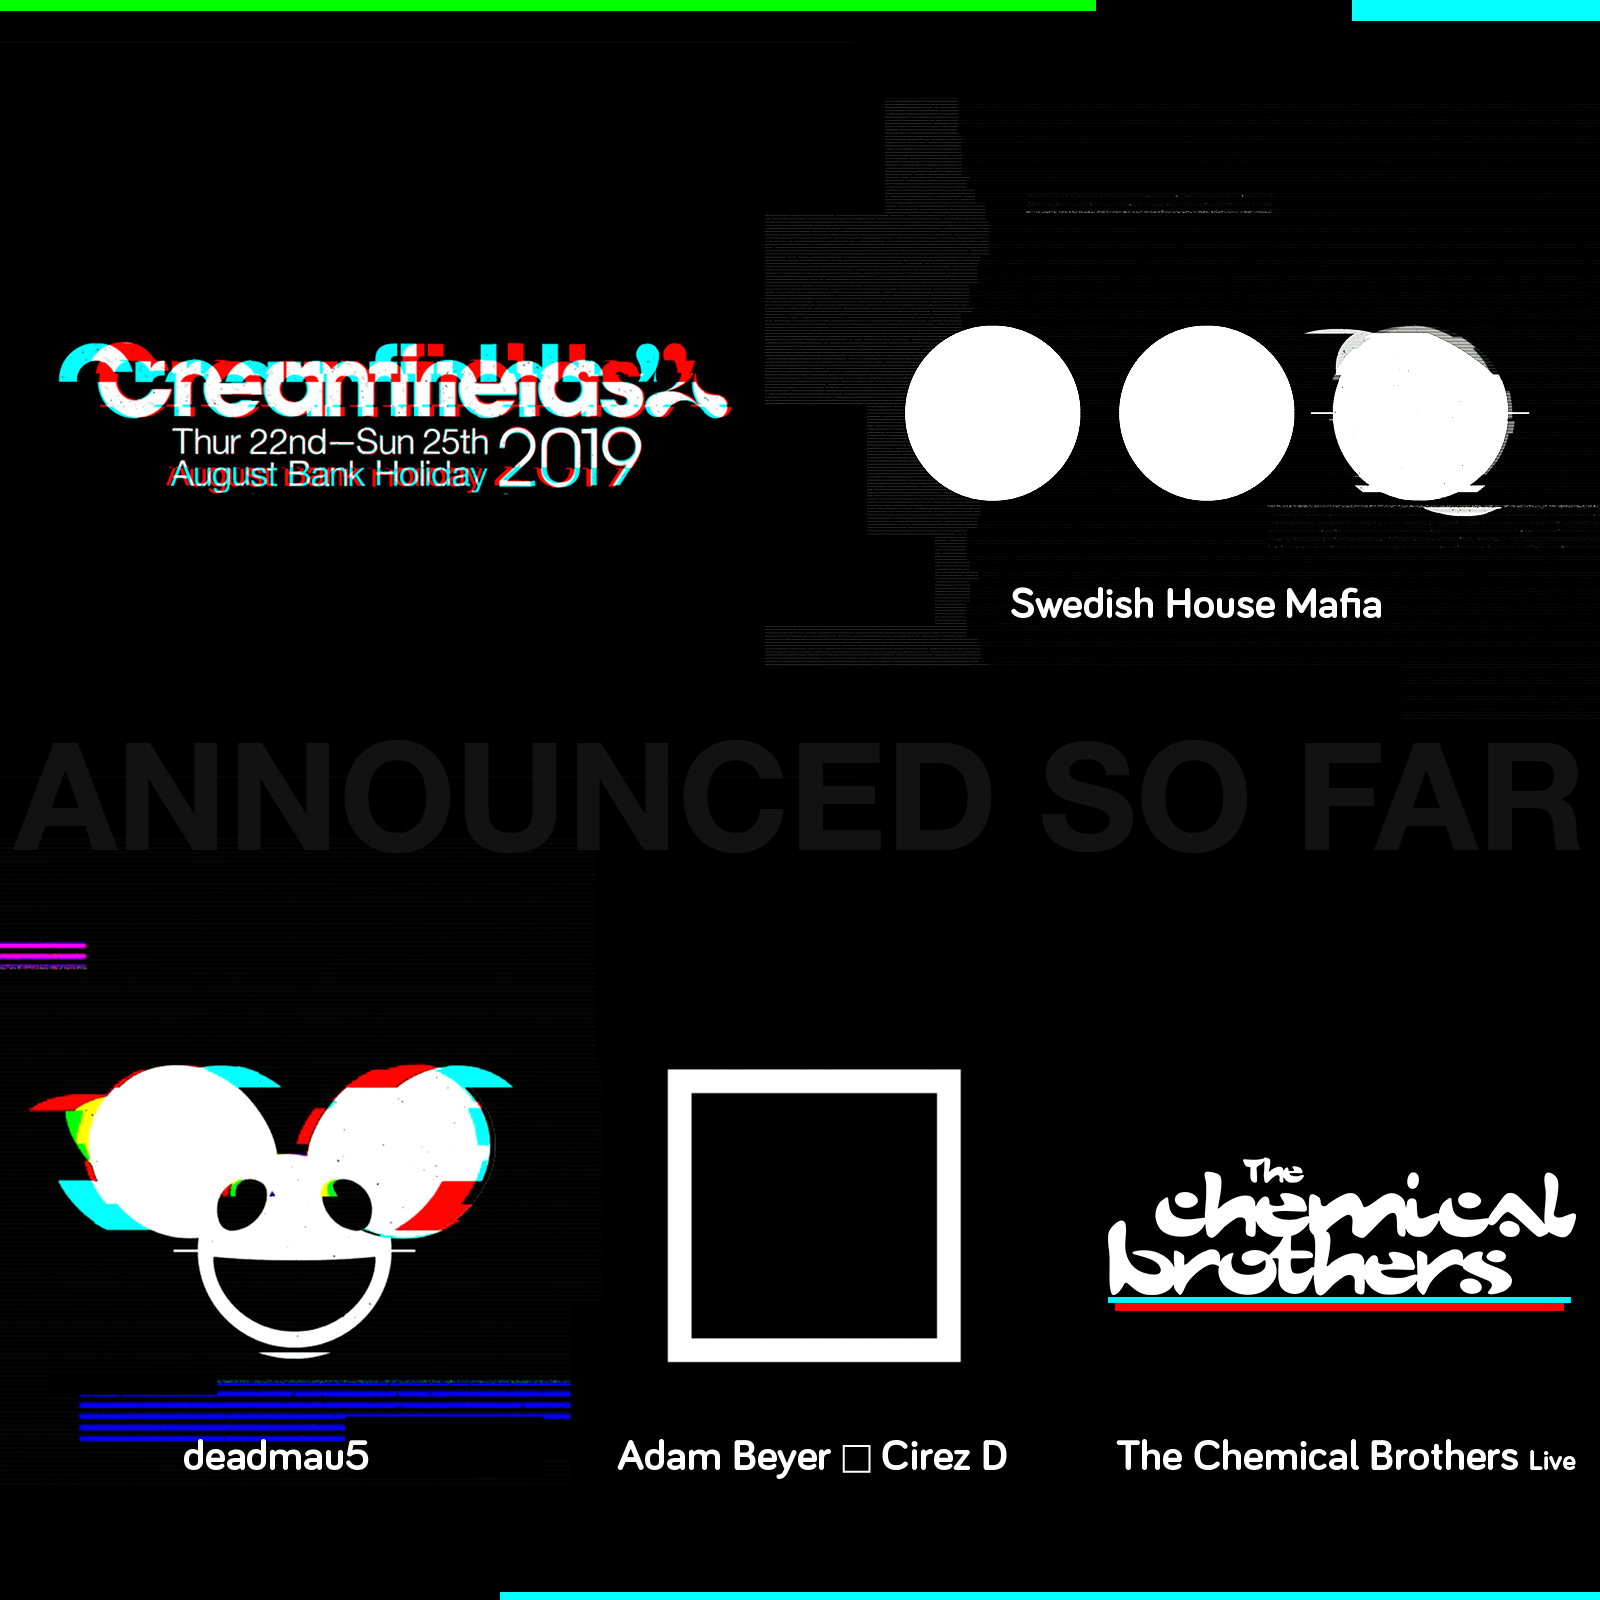 Wave 1 line up announcement coming next week, here is what is announced so far...